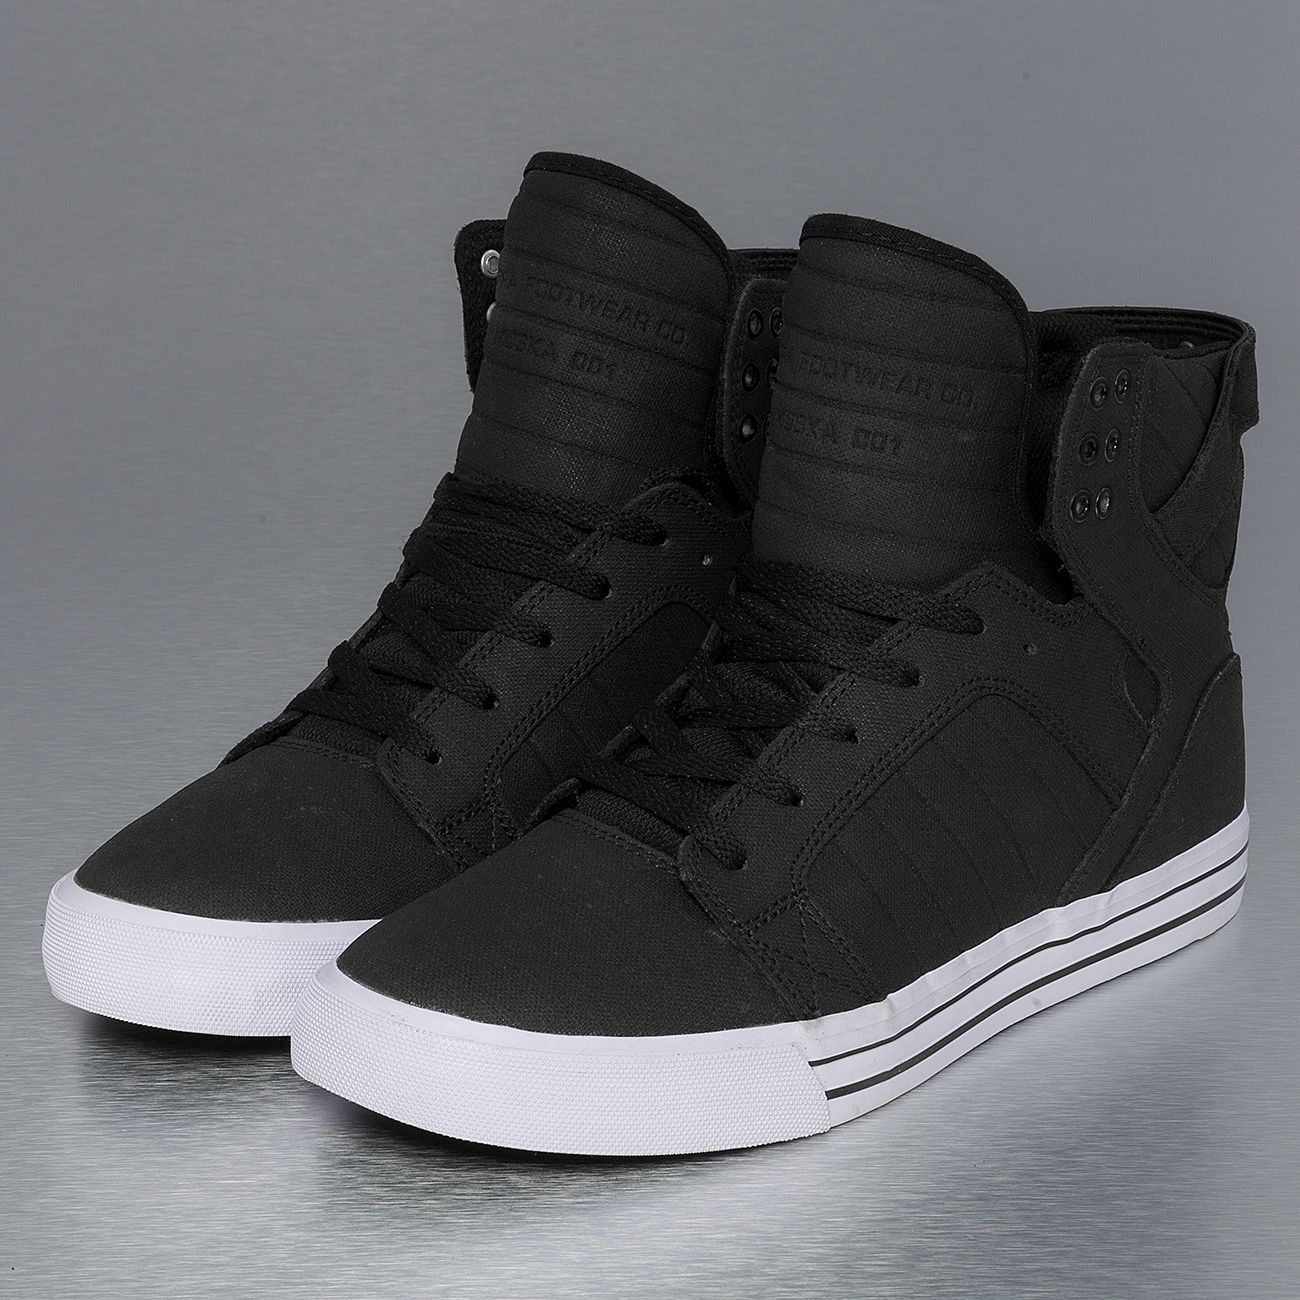 Supra Skytop Skate Shoes BlackWhite | Sneakers men fashion